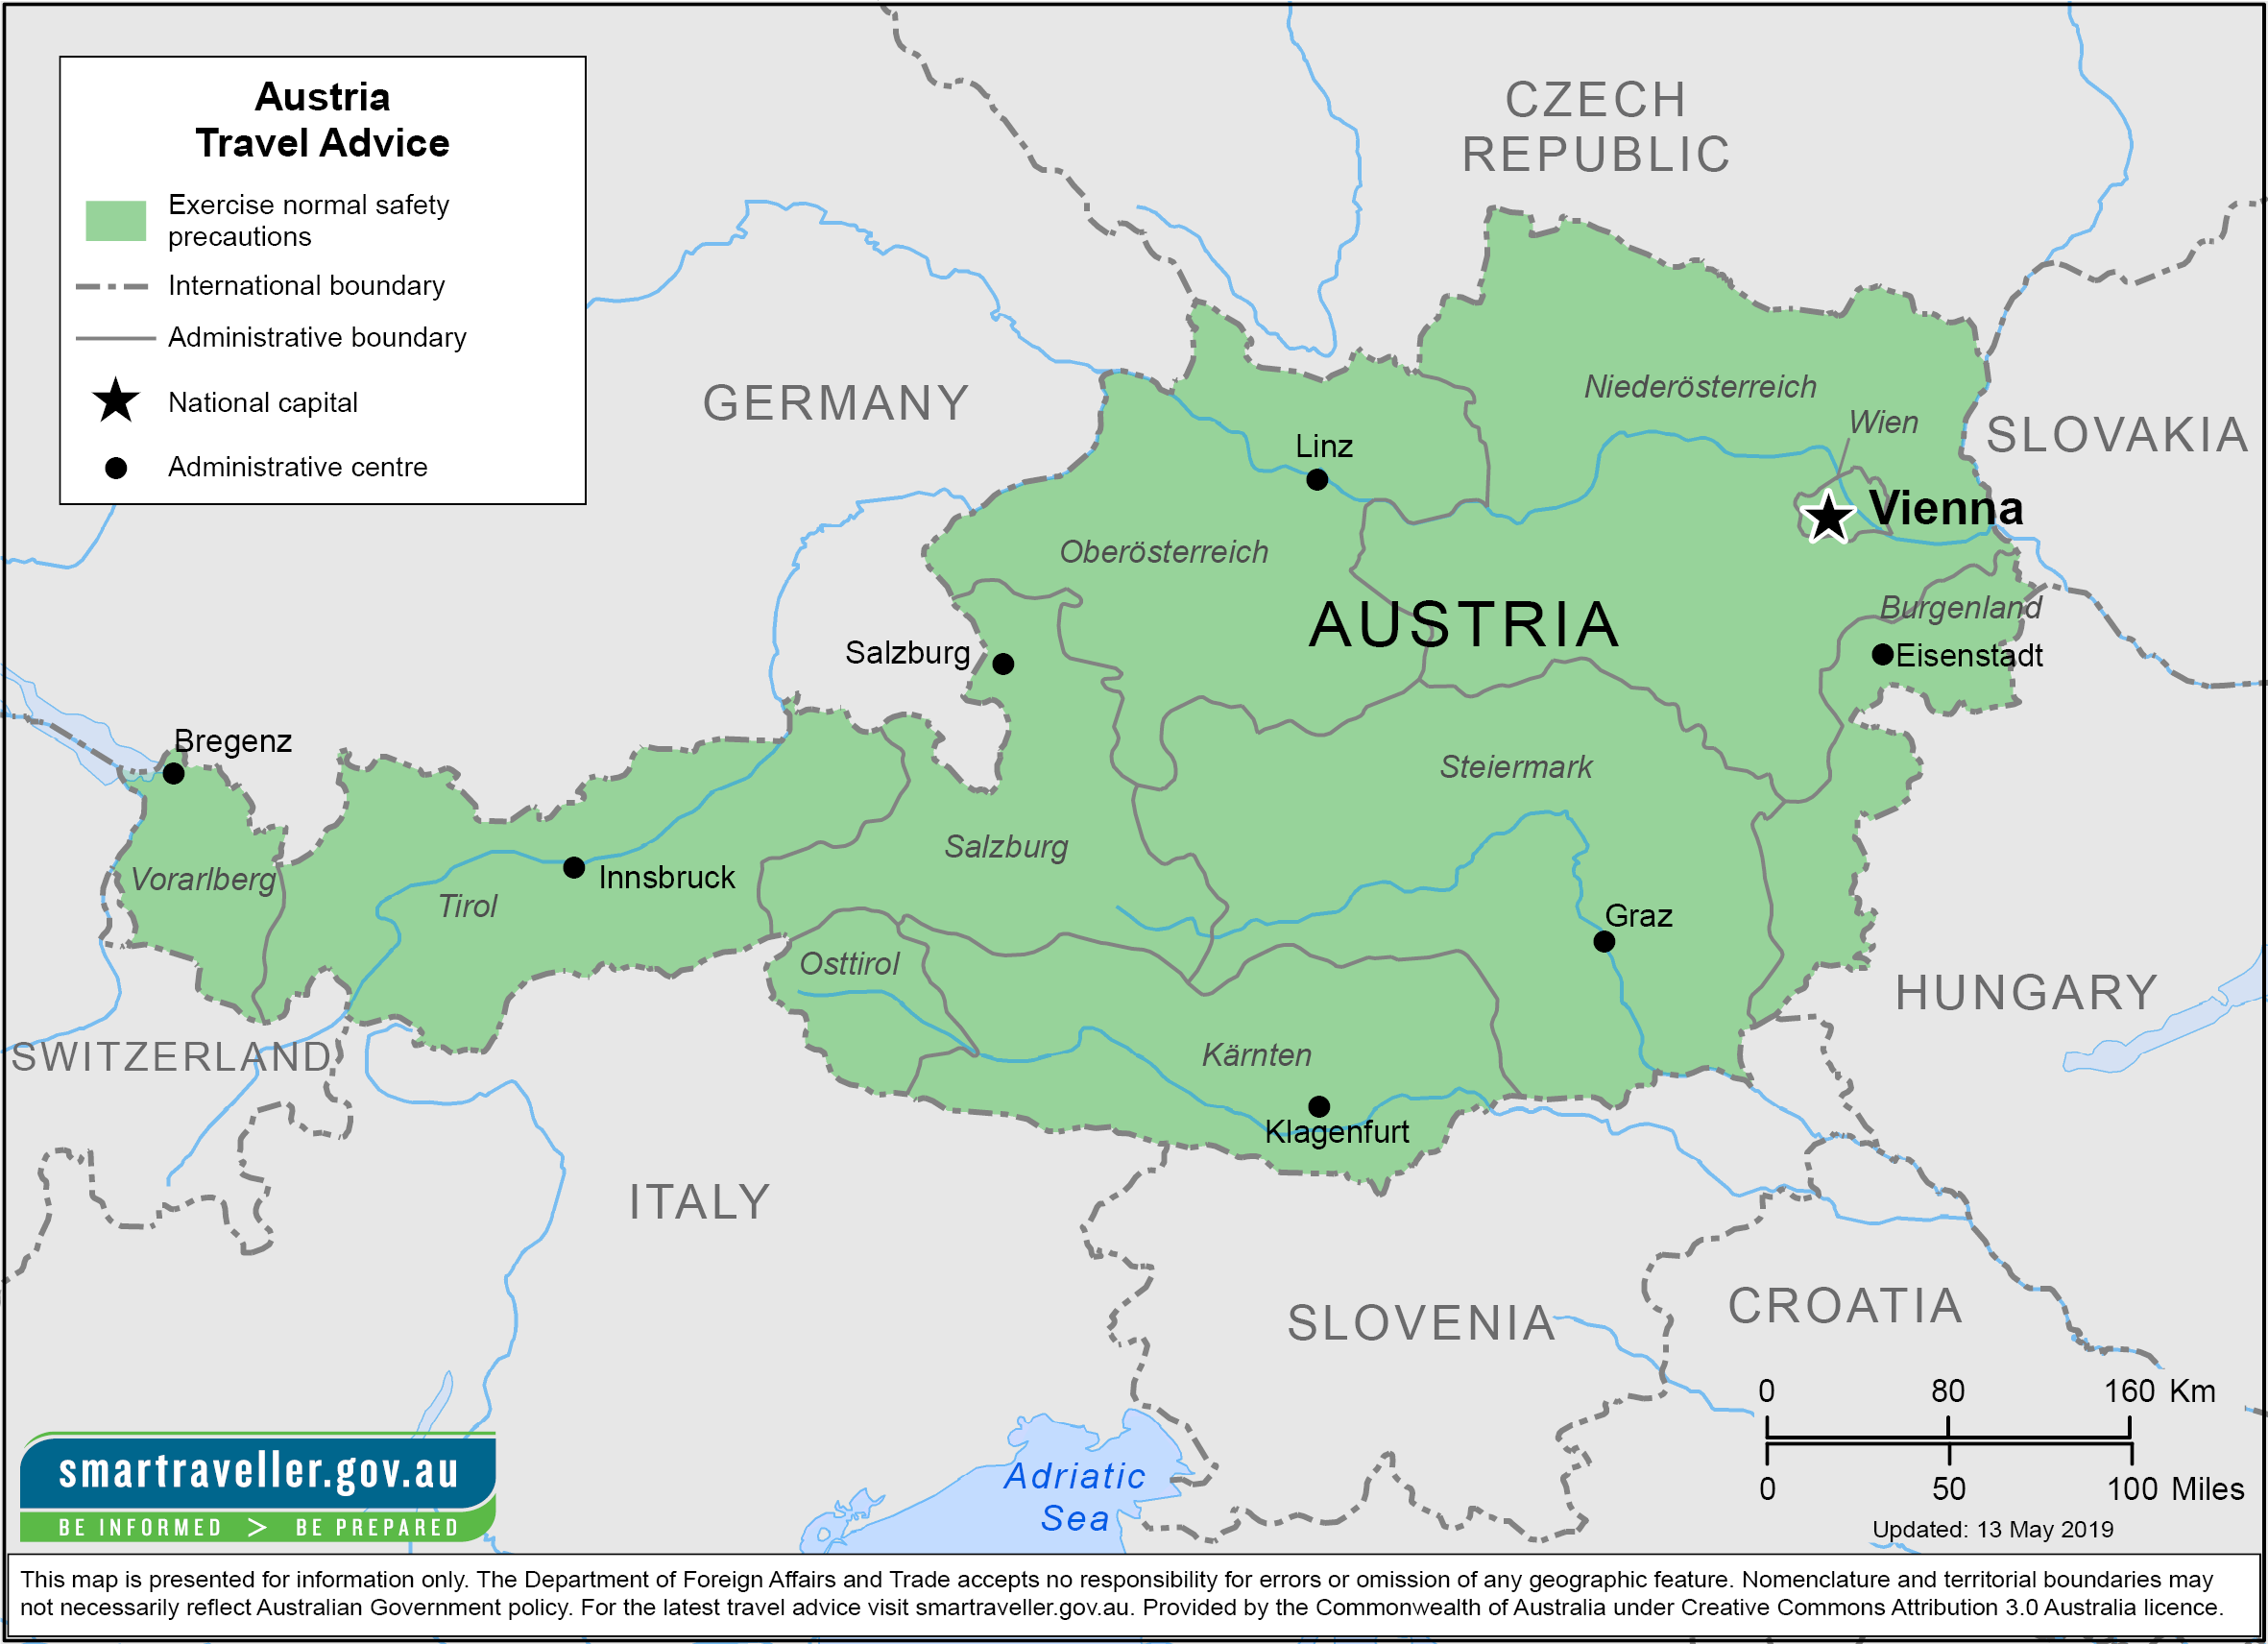 Austria-Travel-Health-Insurance